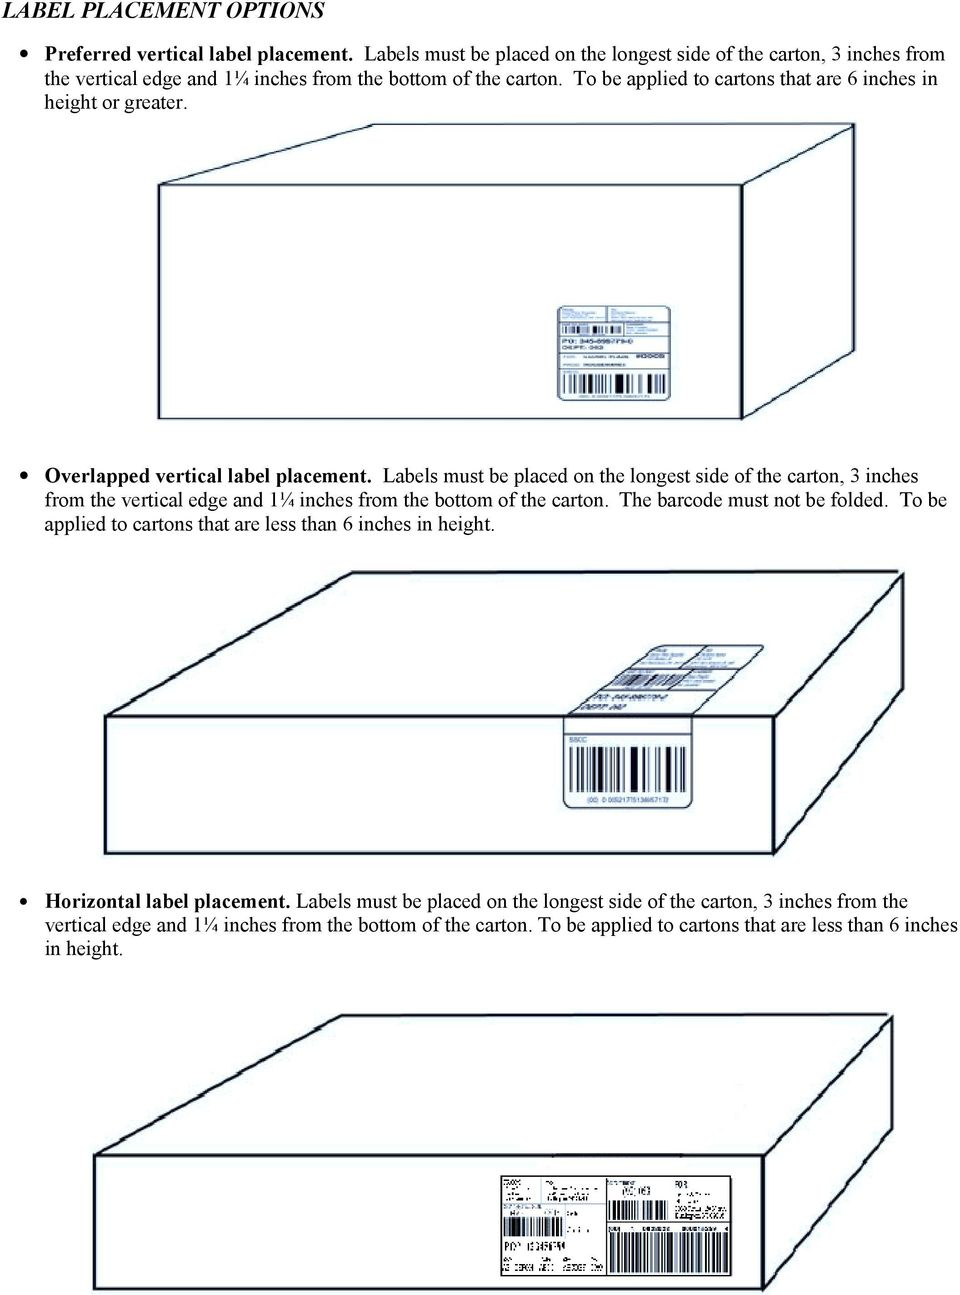 To be applied to cartons that are 6 inches in height or greater. Overlapped vertical label placement.  The barcode must not be folded.